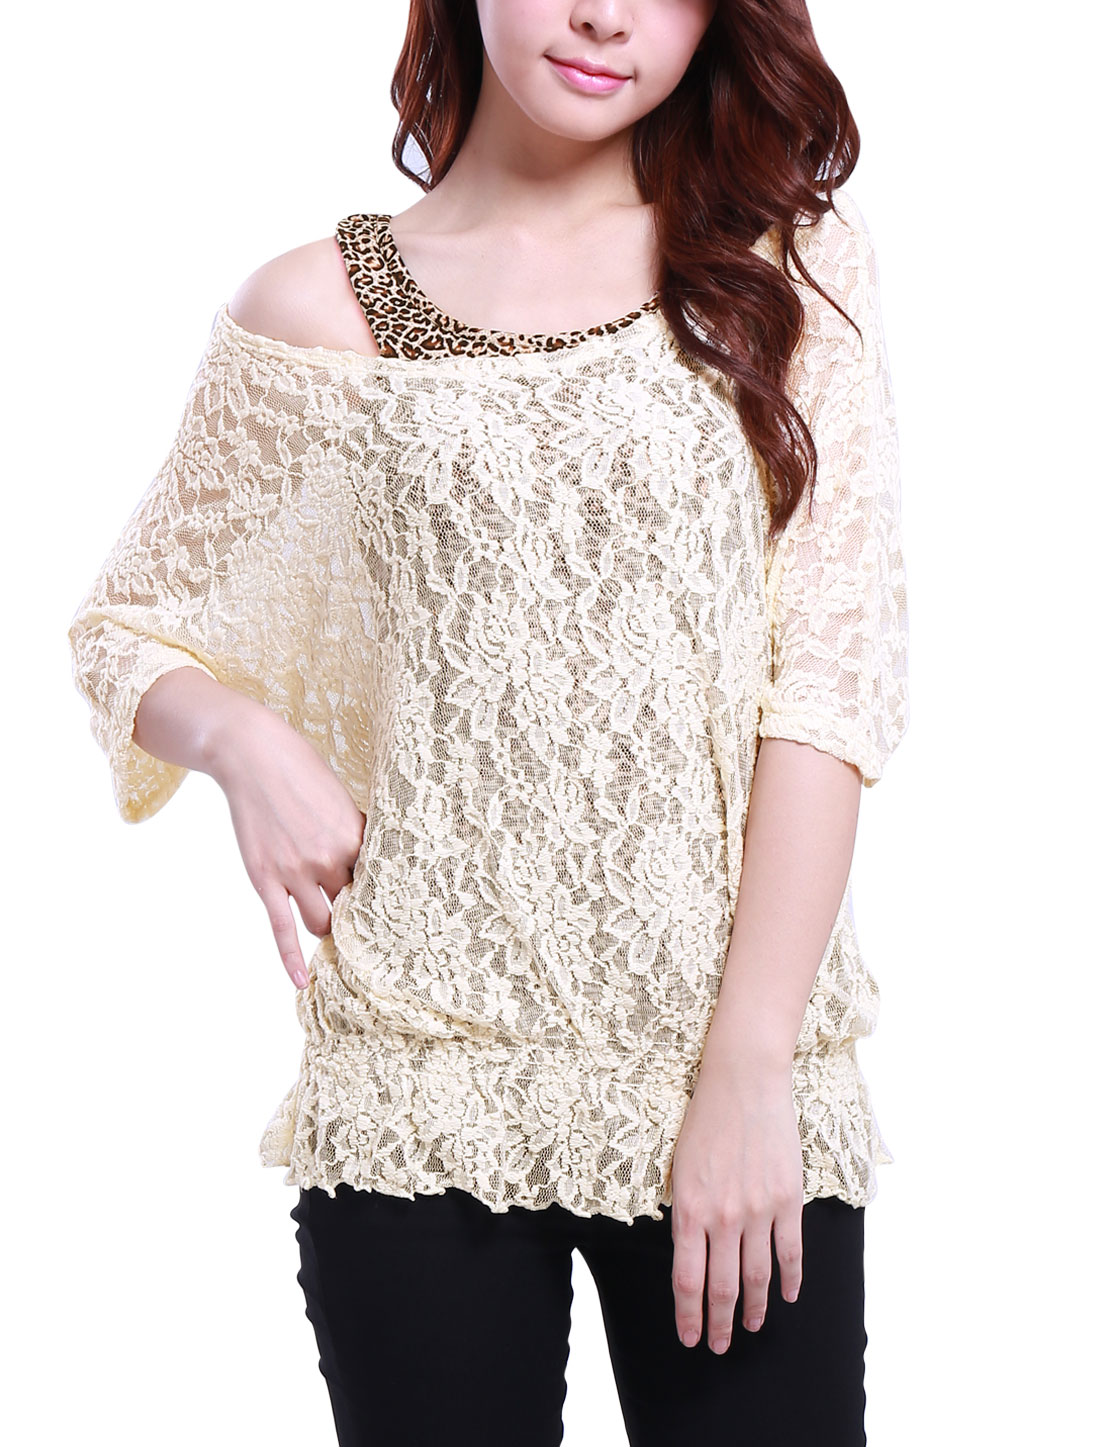 Ladies Beige Scoop Neck Half Sleeves Lace Shirt M w Tank Top